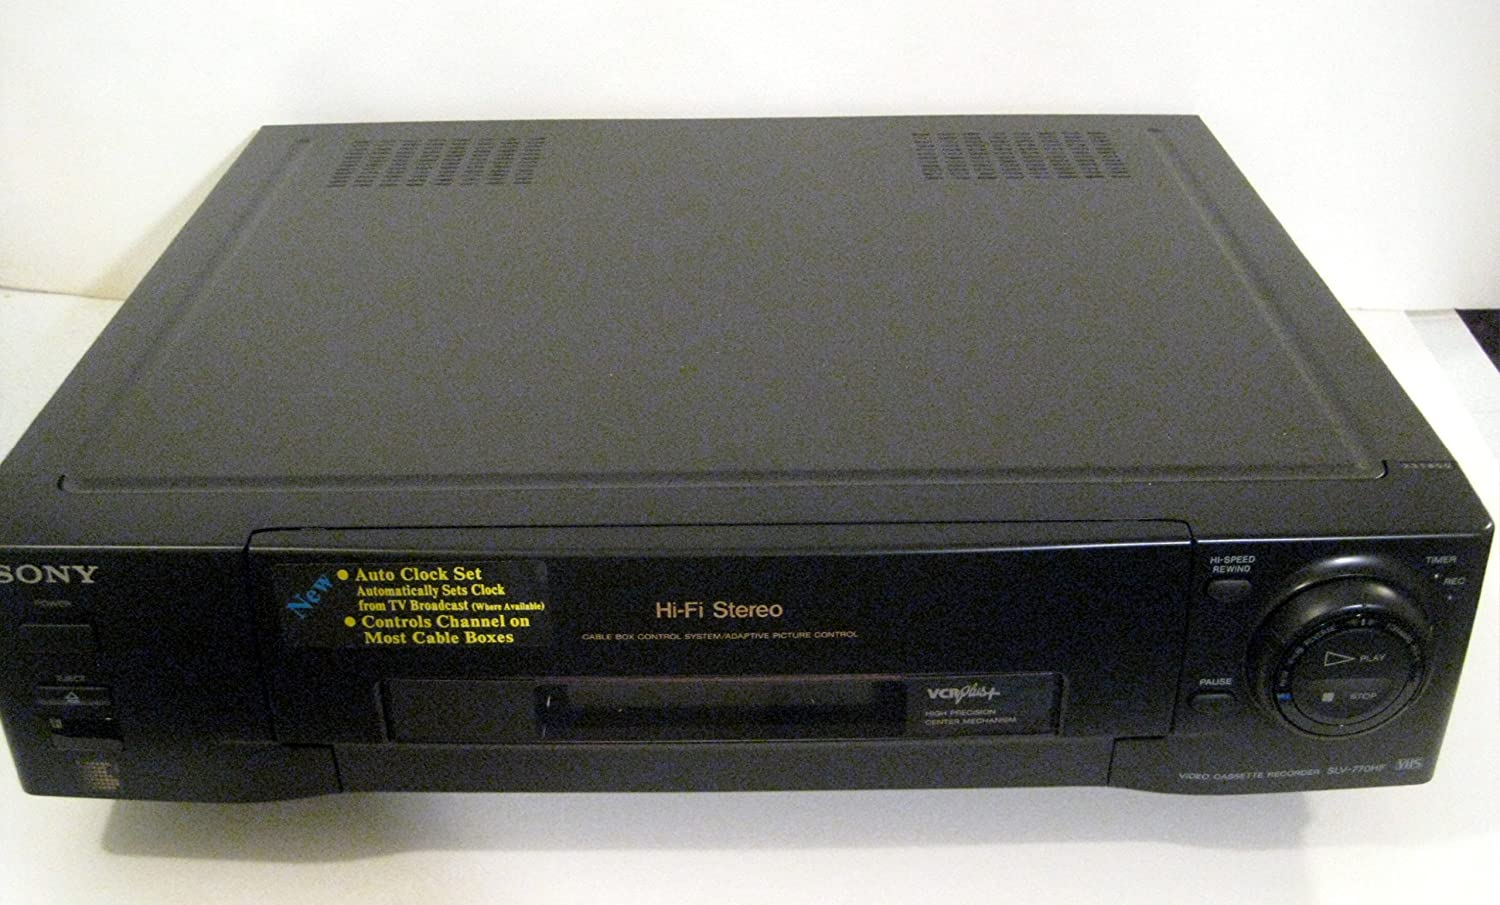 B00DRJH2TS SONY 770HF VCR Stereo Advanced Features 91OAQTR2h8L.SL1500_